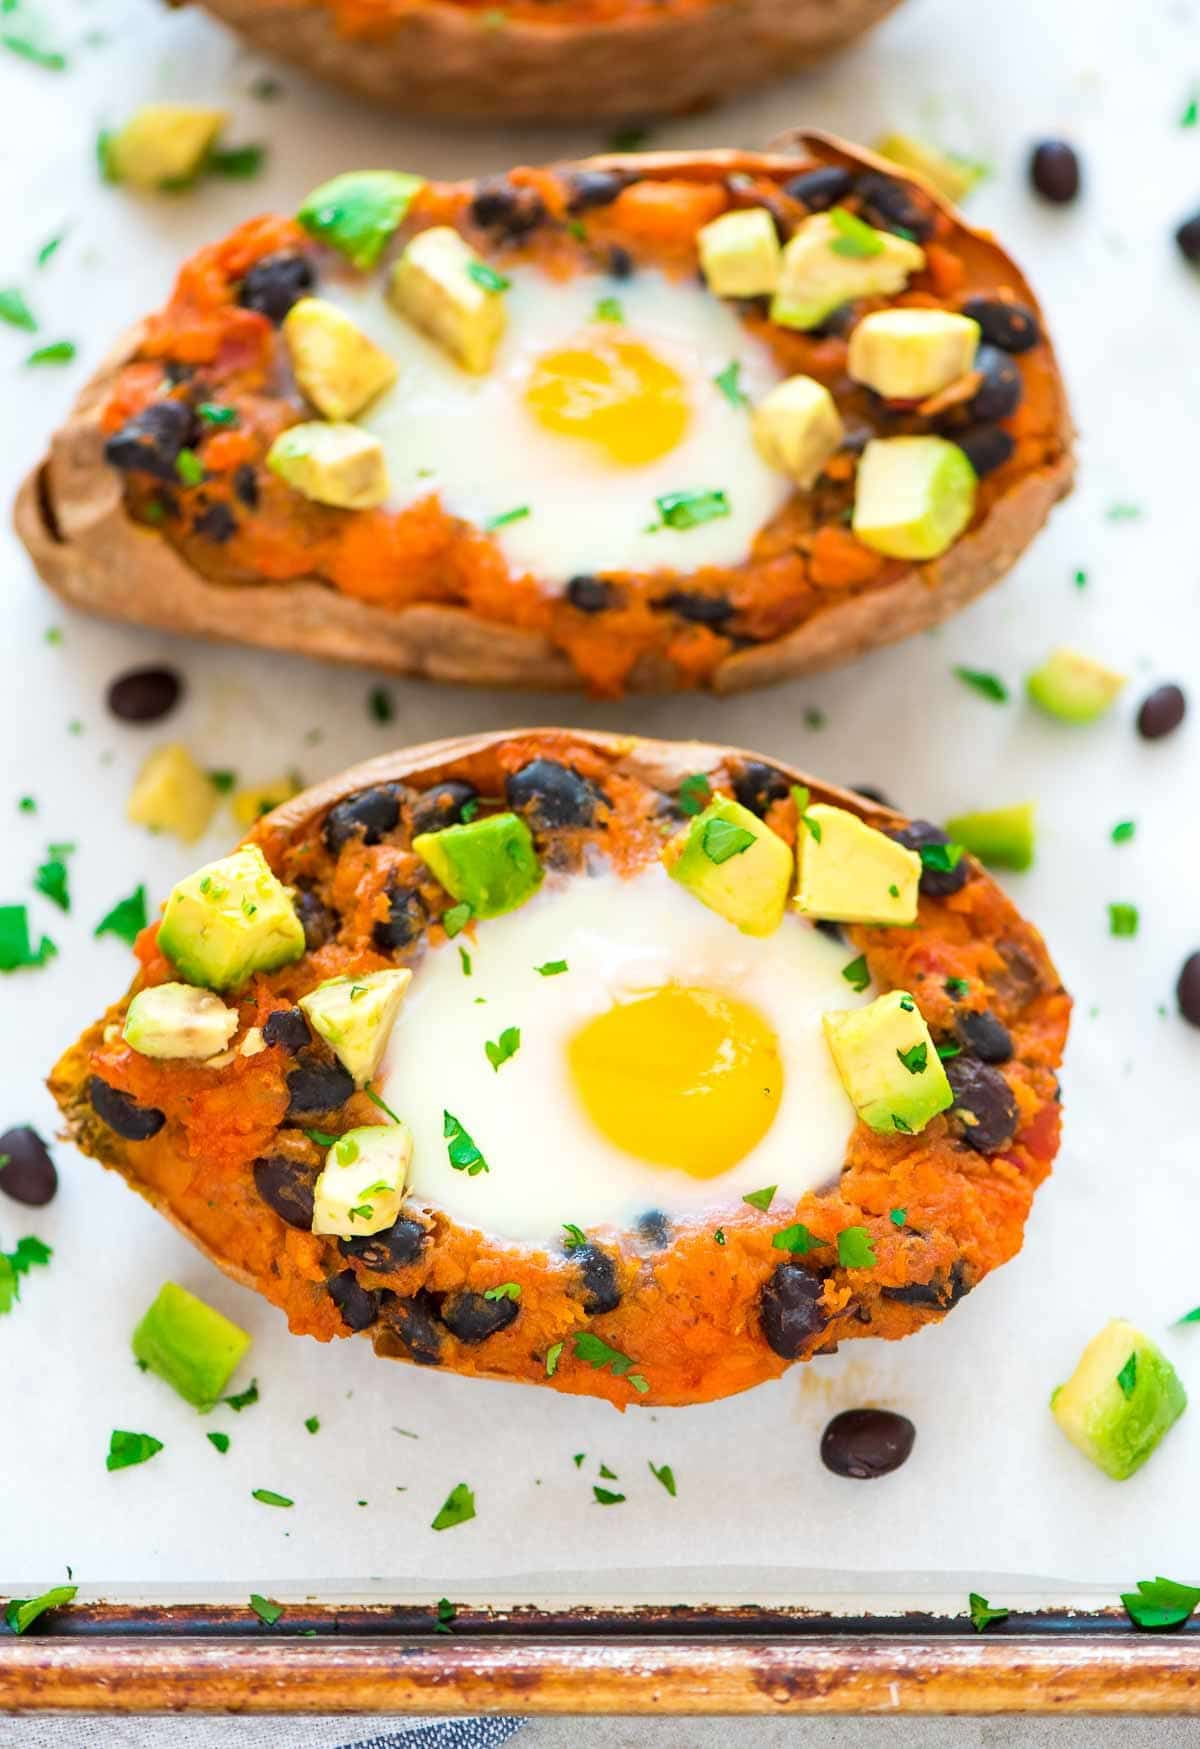 Twice Baked Mexican Stuffed Sweet Potatoes with black beans, avocado, and a runny egg. An easy, healthy recipe that's perfect anytime you need a quick dinner.